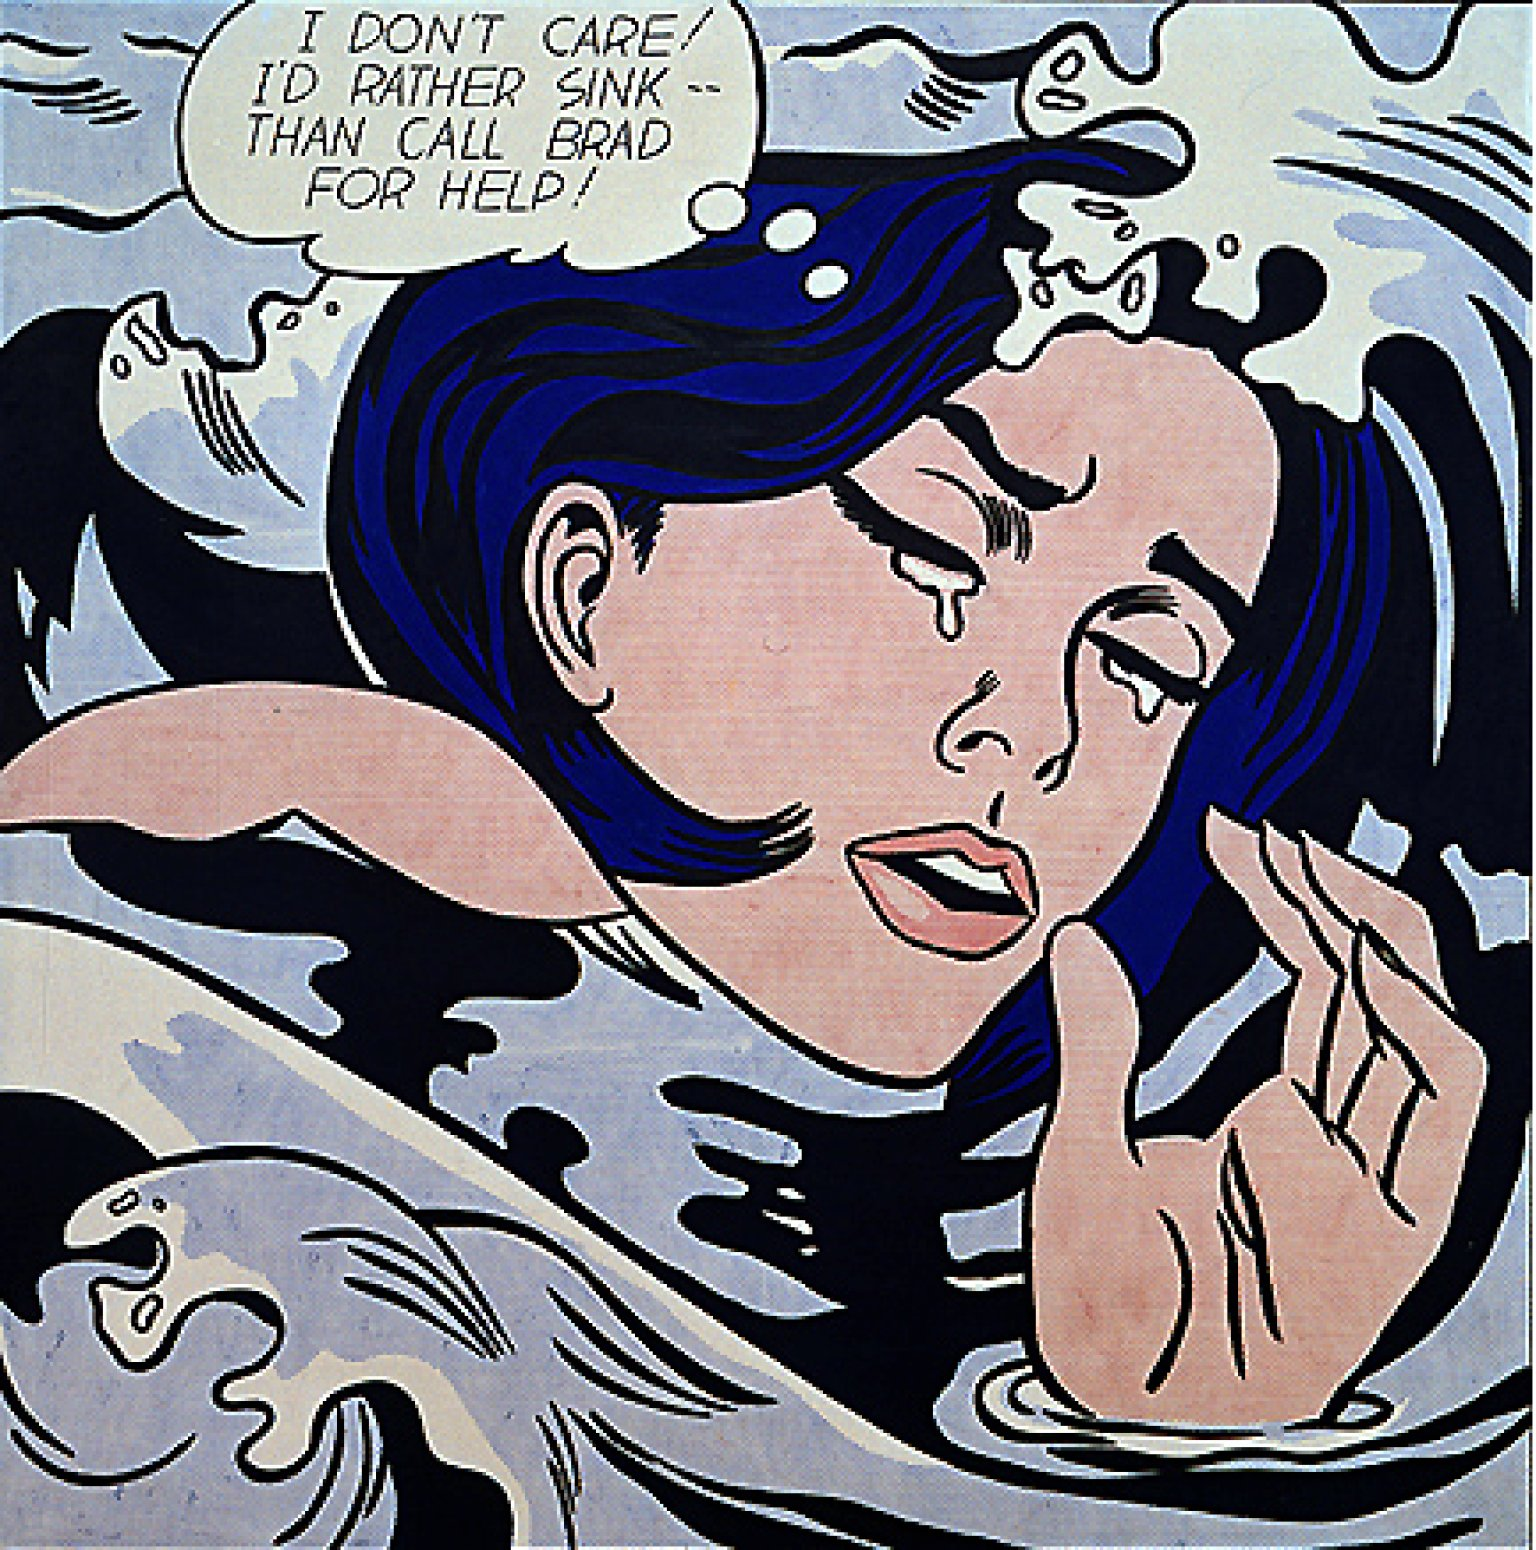 Roy Lichtenstein, Drowning Girl, 1963, huile et magna sur toile, 171,6 x 169,5 cm, The Museum of Modern Art, New York City